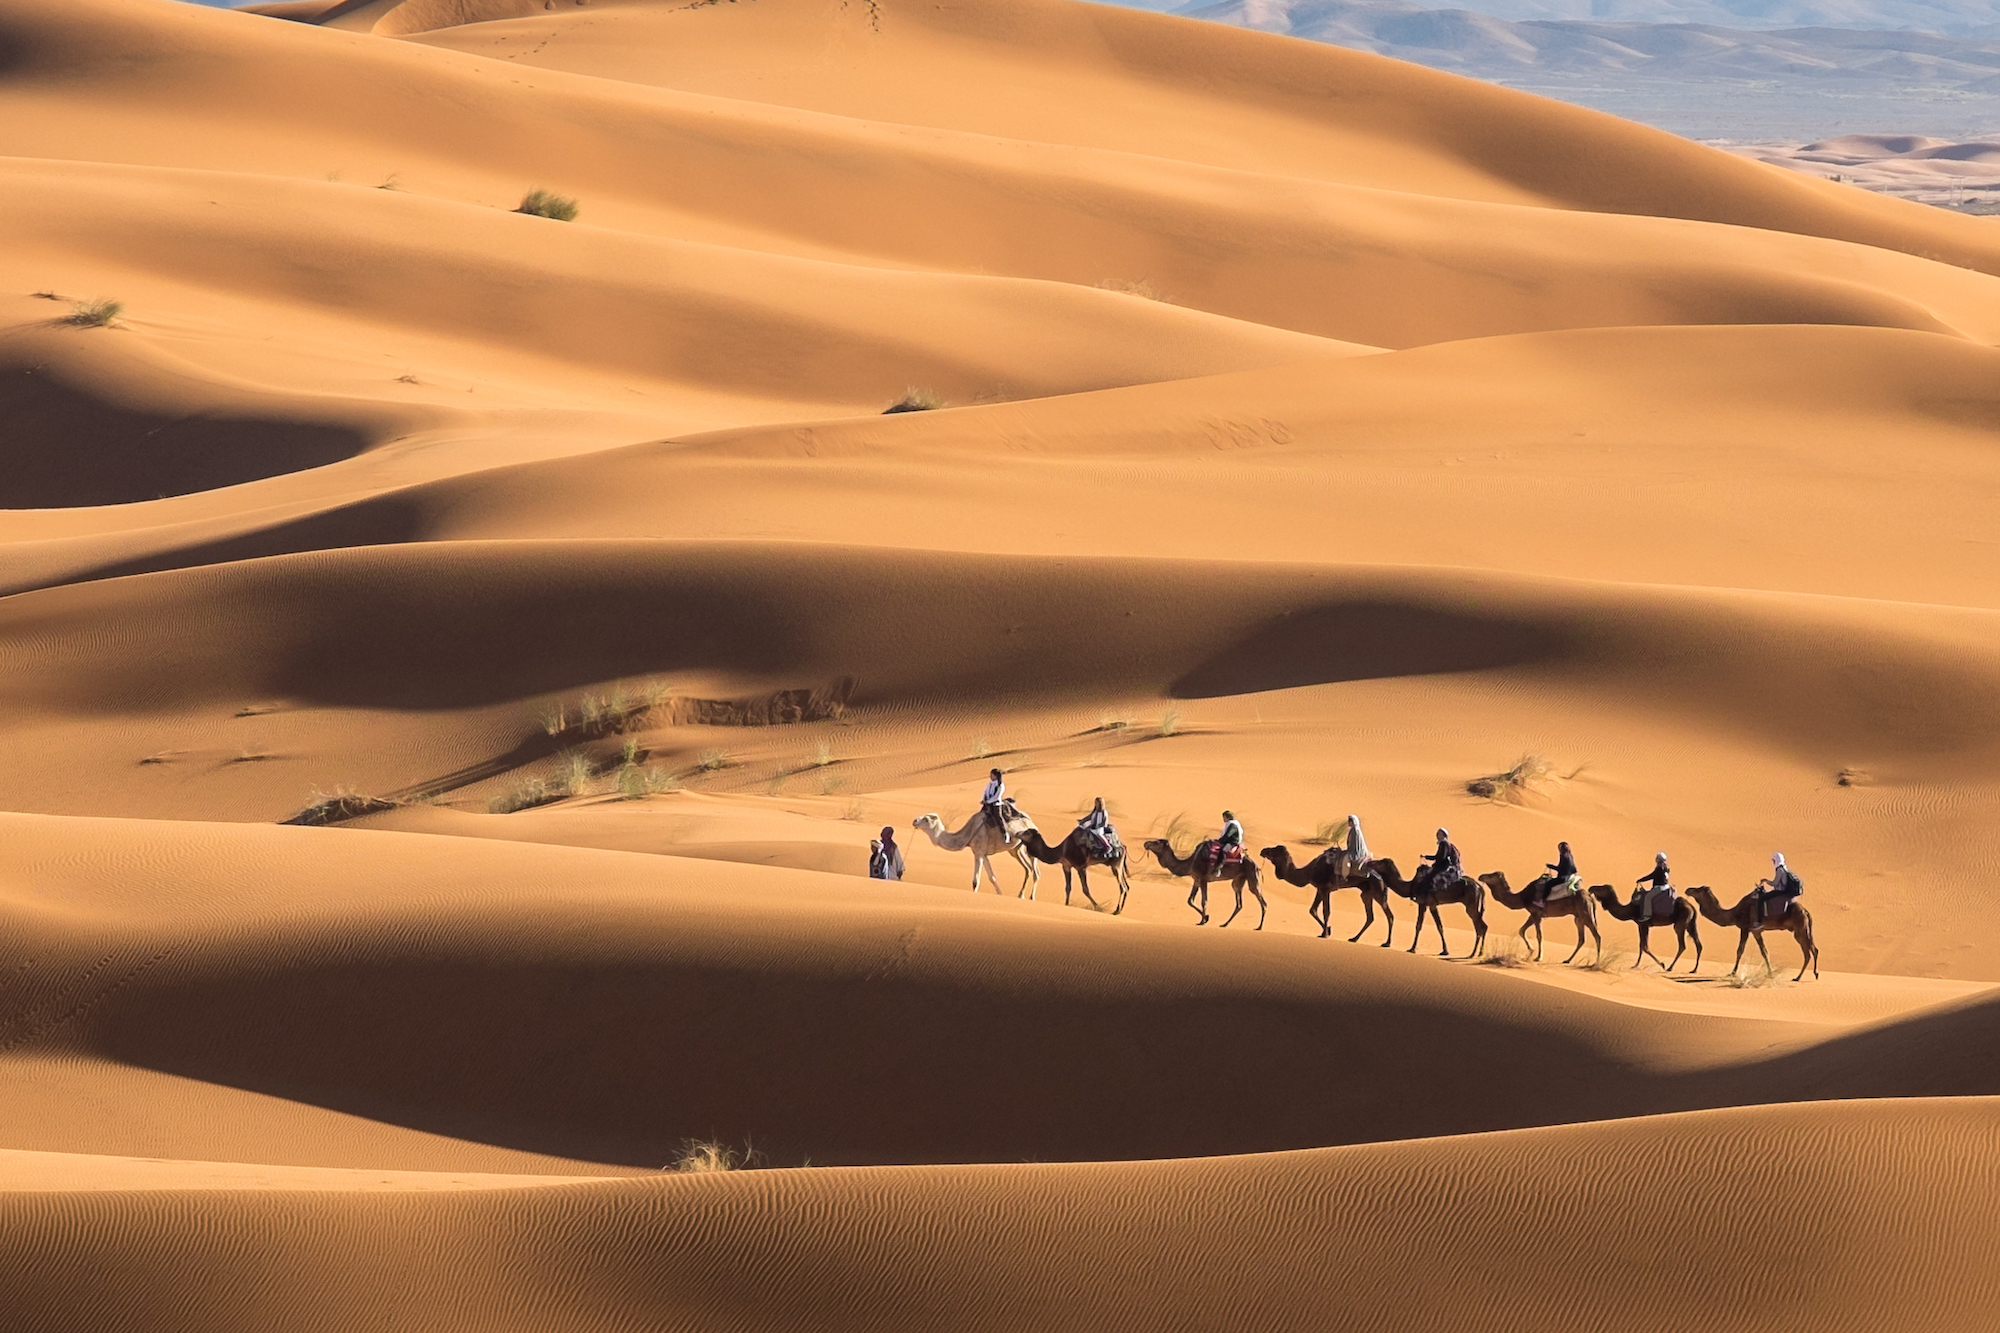 Camel train moving through the Sahara at the end of the solar eclipse.